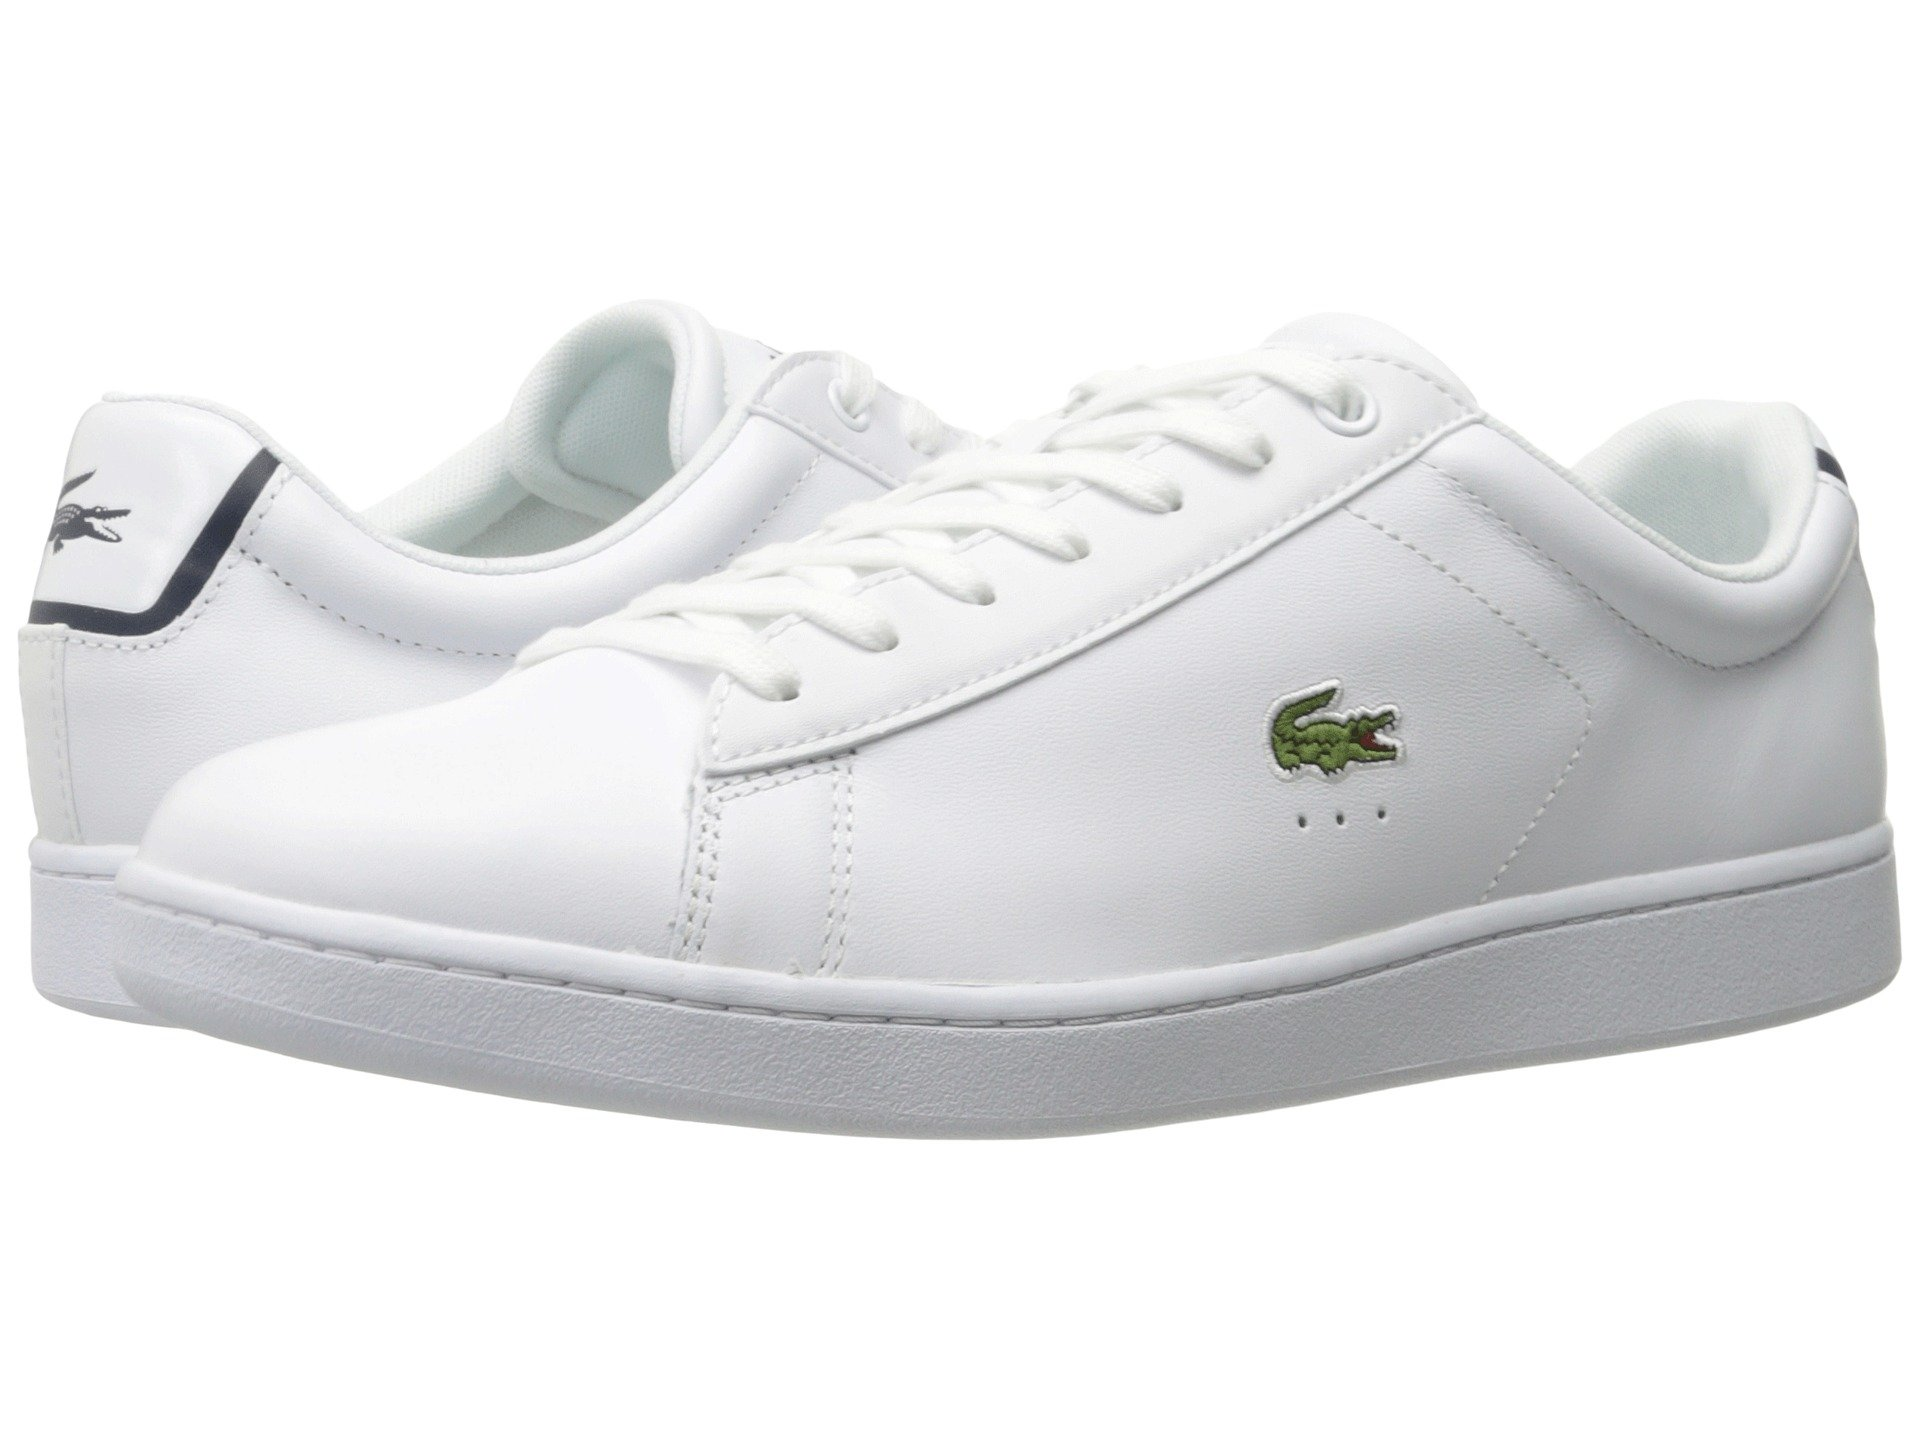 Lacoste Sneakers Athletic Shoes Men Shipped Free At Zappos Sepatu Bayi Onitsuka Tiger White Carnaby Evo Bl 1